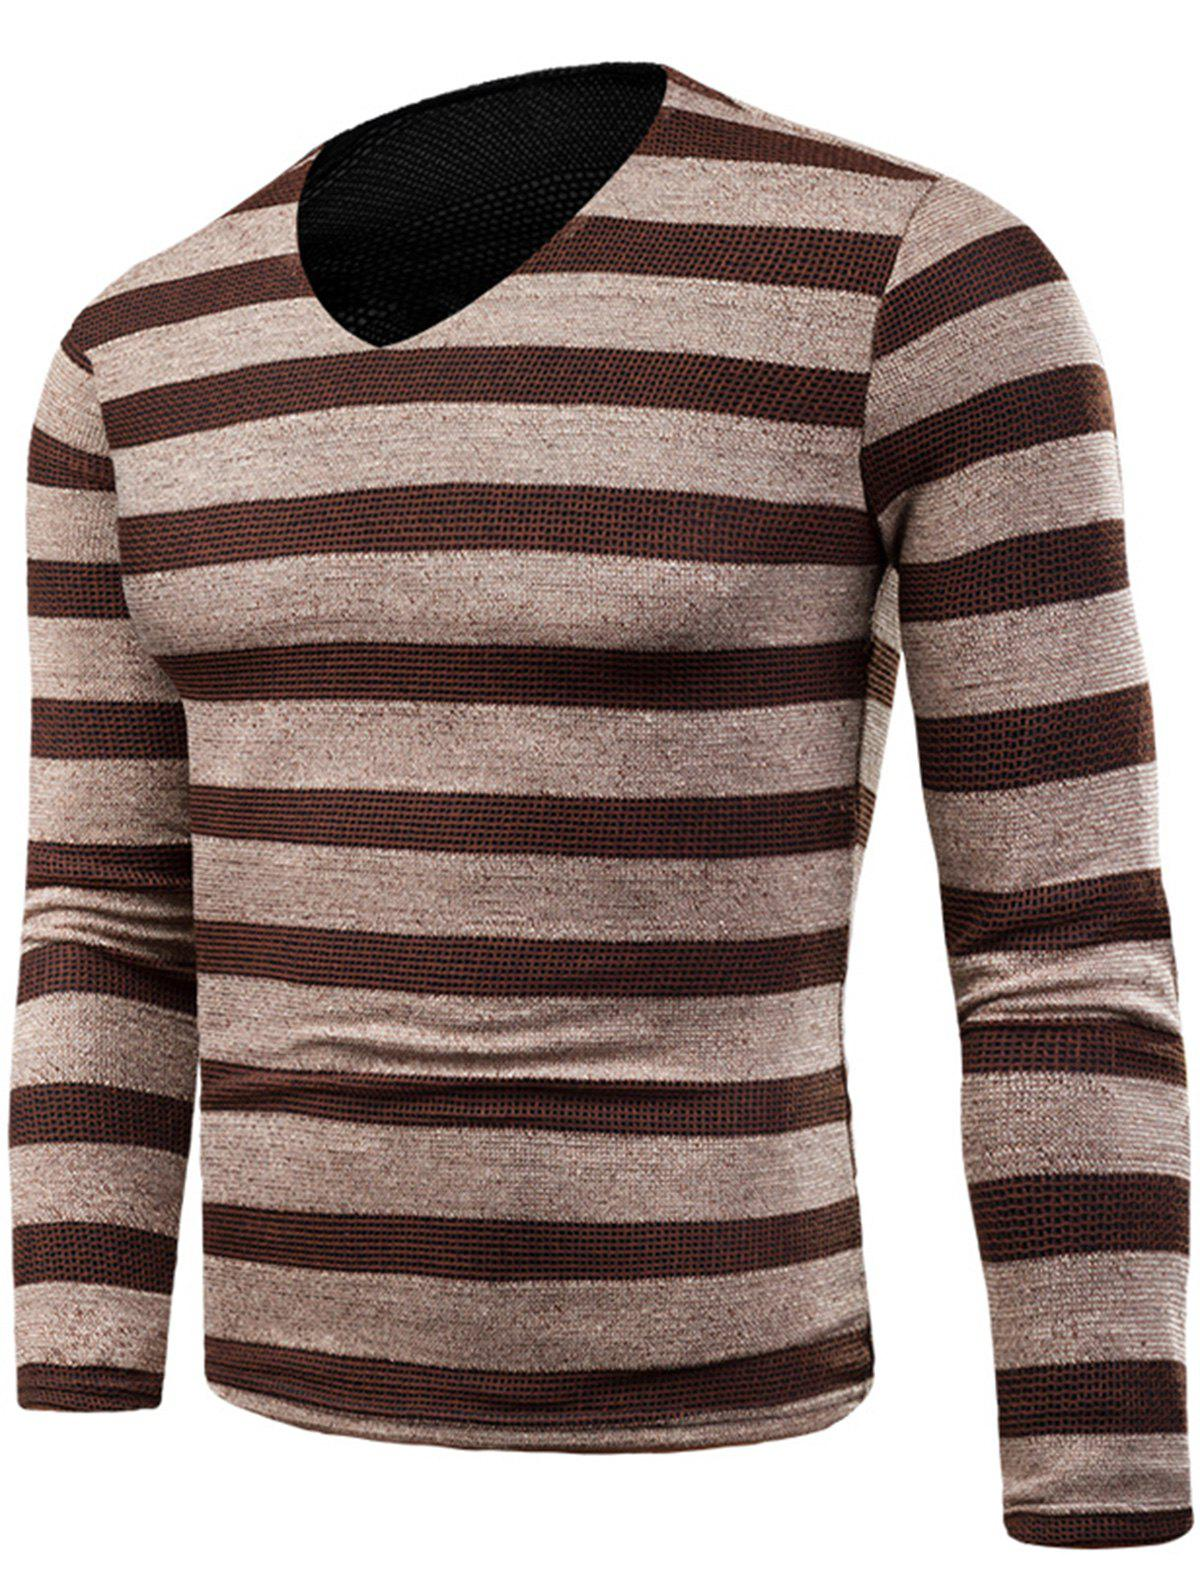 V Neck Long Sleeve Knitted Stripe T-shirt - KHAKI 5XL